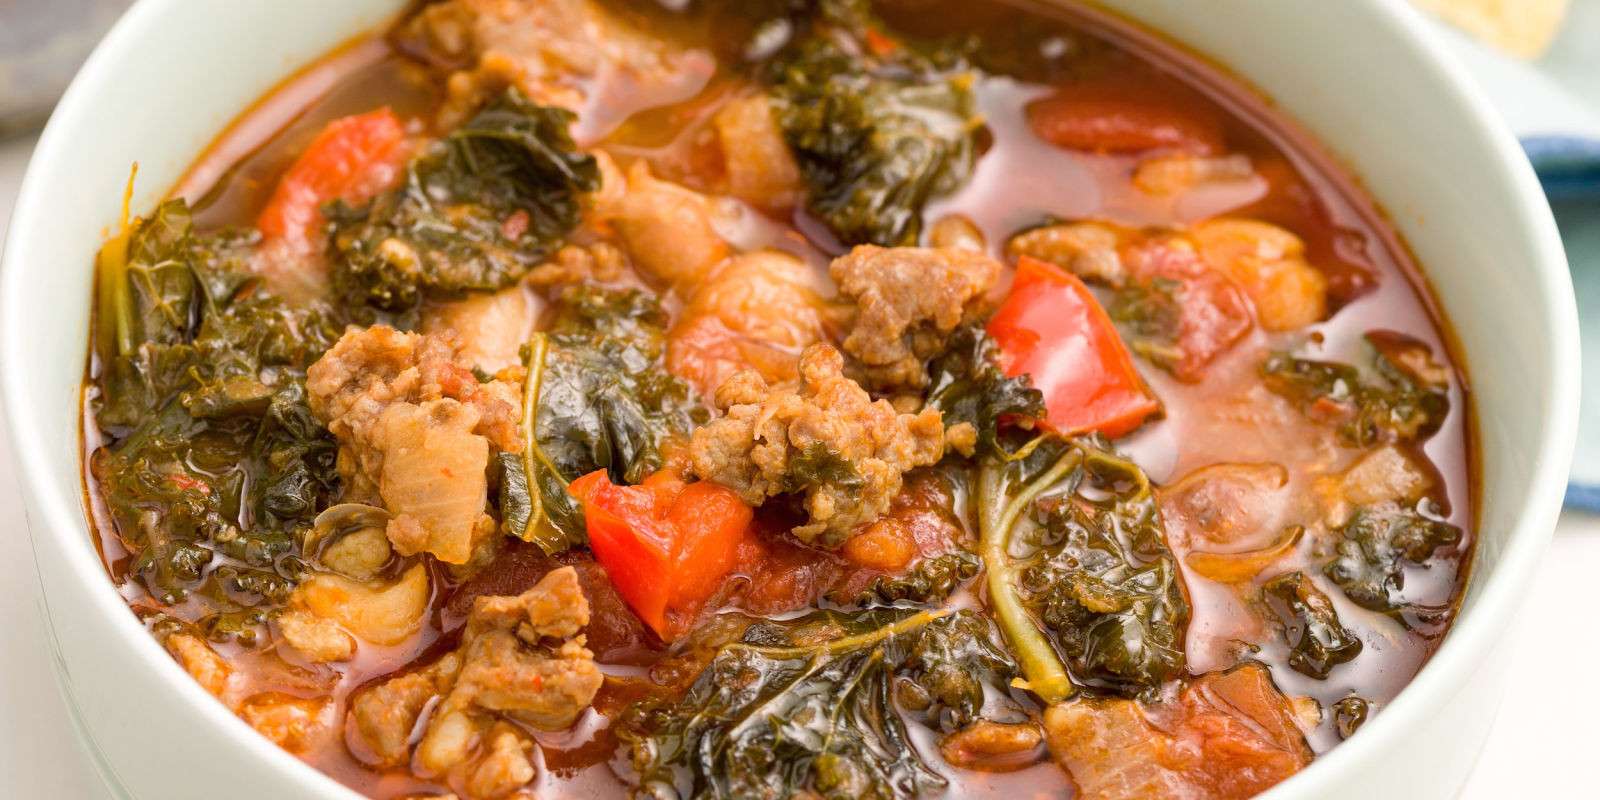 Turkey Sausage Recipes  Best Spicy Turkey Sausage and Kale Chili Recipe How to